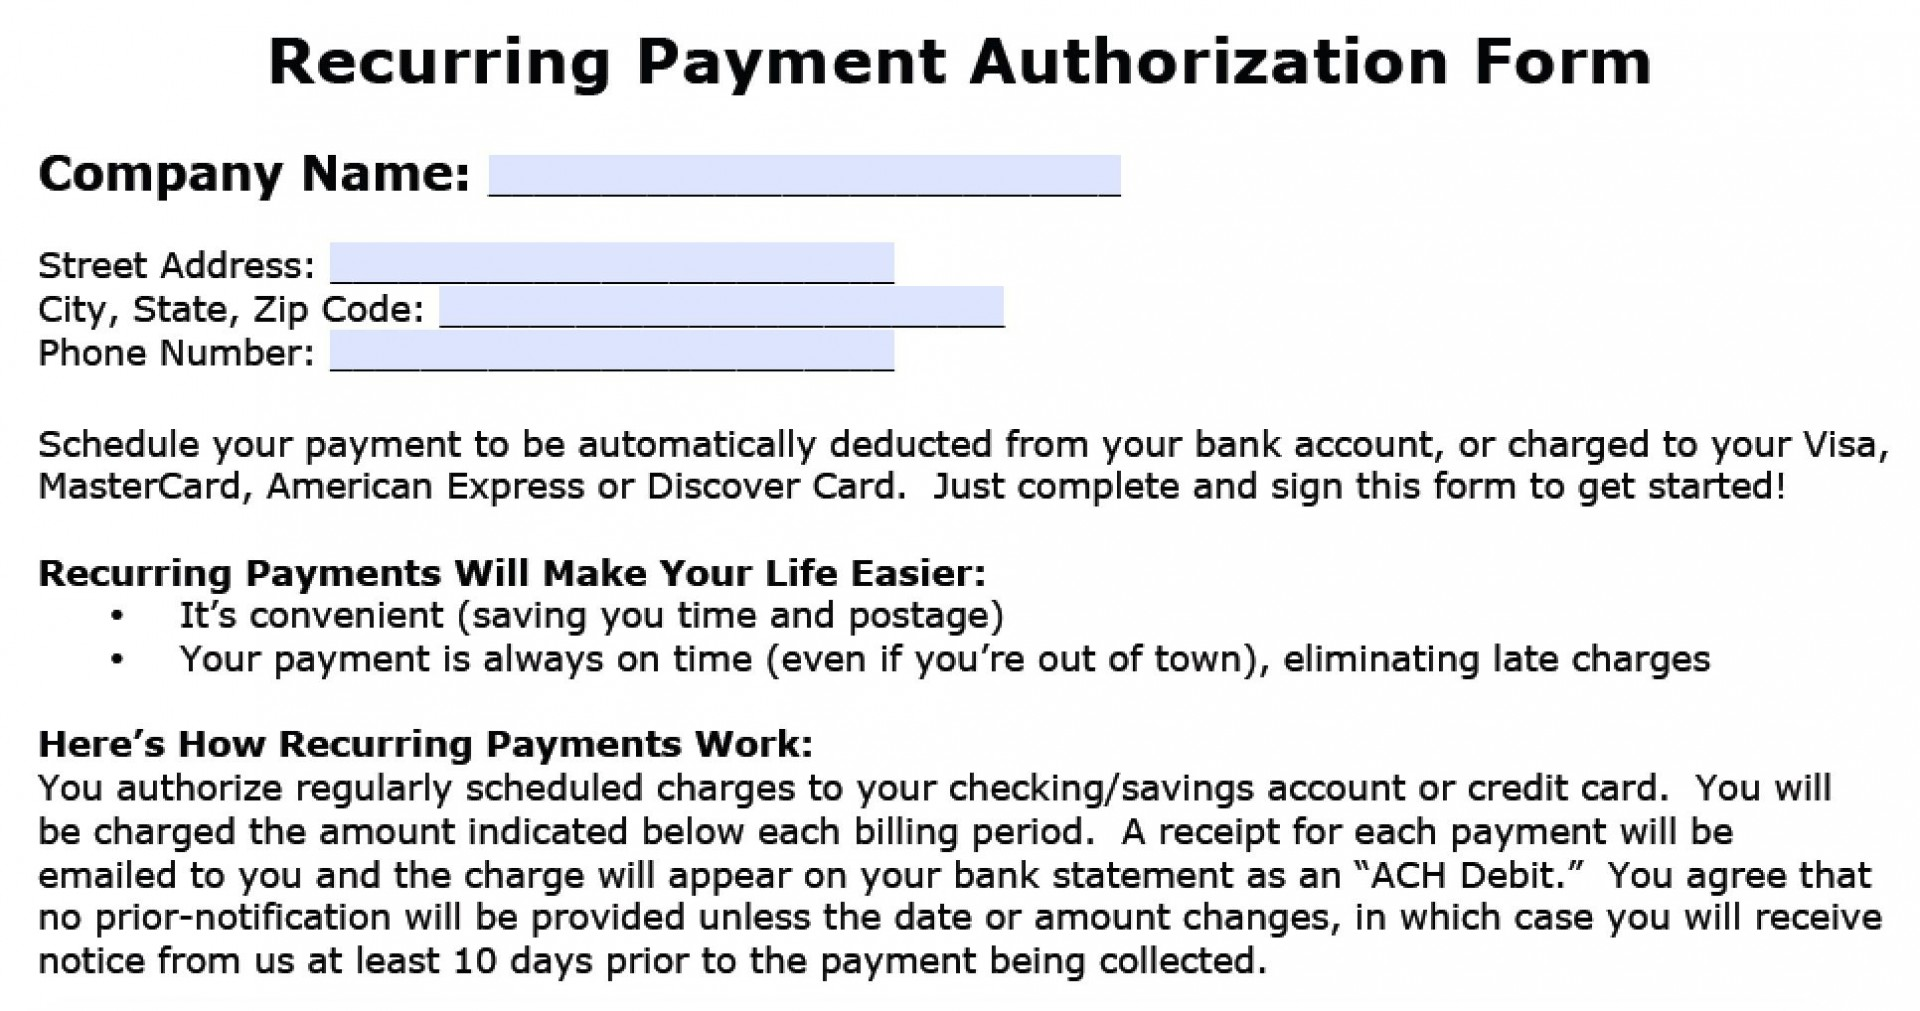 007 Stupendou Automatic Credit Card Payment Authorization Form Template Sample 1920